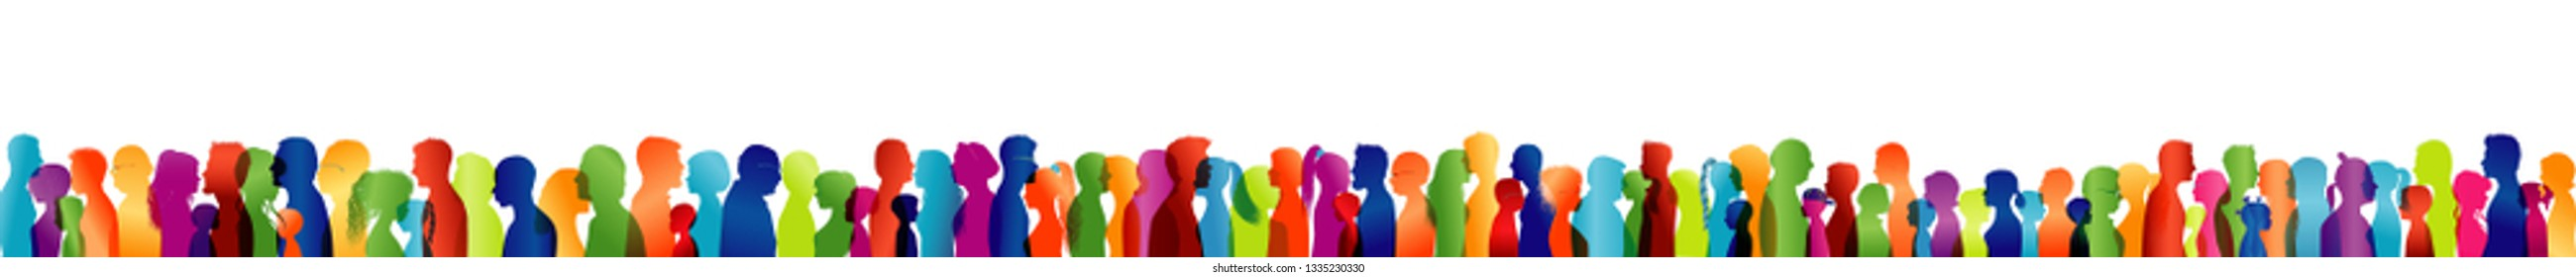 Talking crowd. Large group of diverse people. Dialogue between people. Colored silhouette profiles. People of different ages talking. Colorful multiple exposure